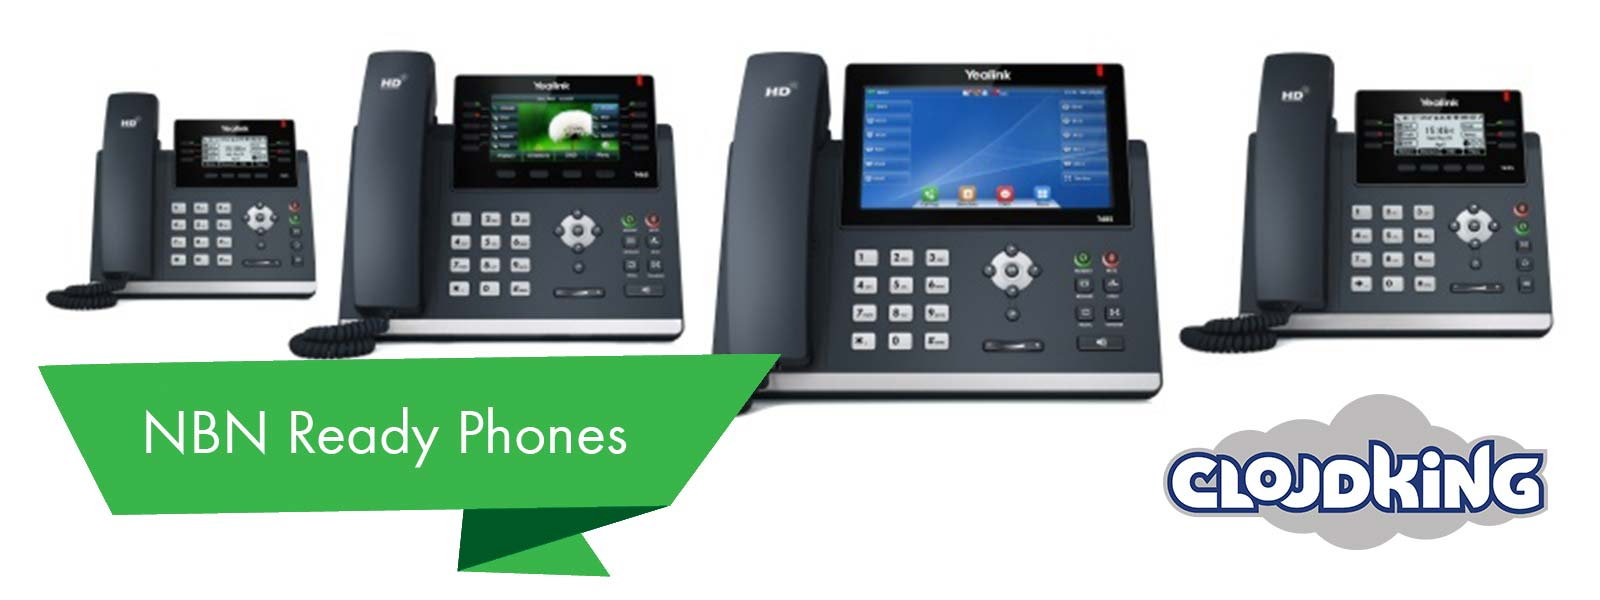 NBN Ready Phone Systems